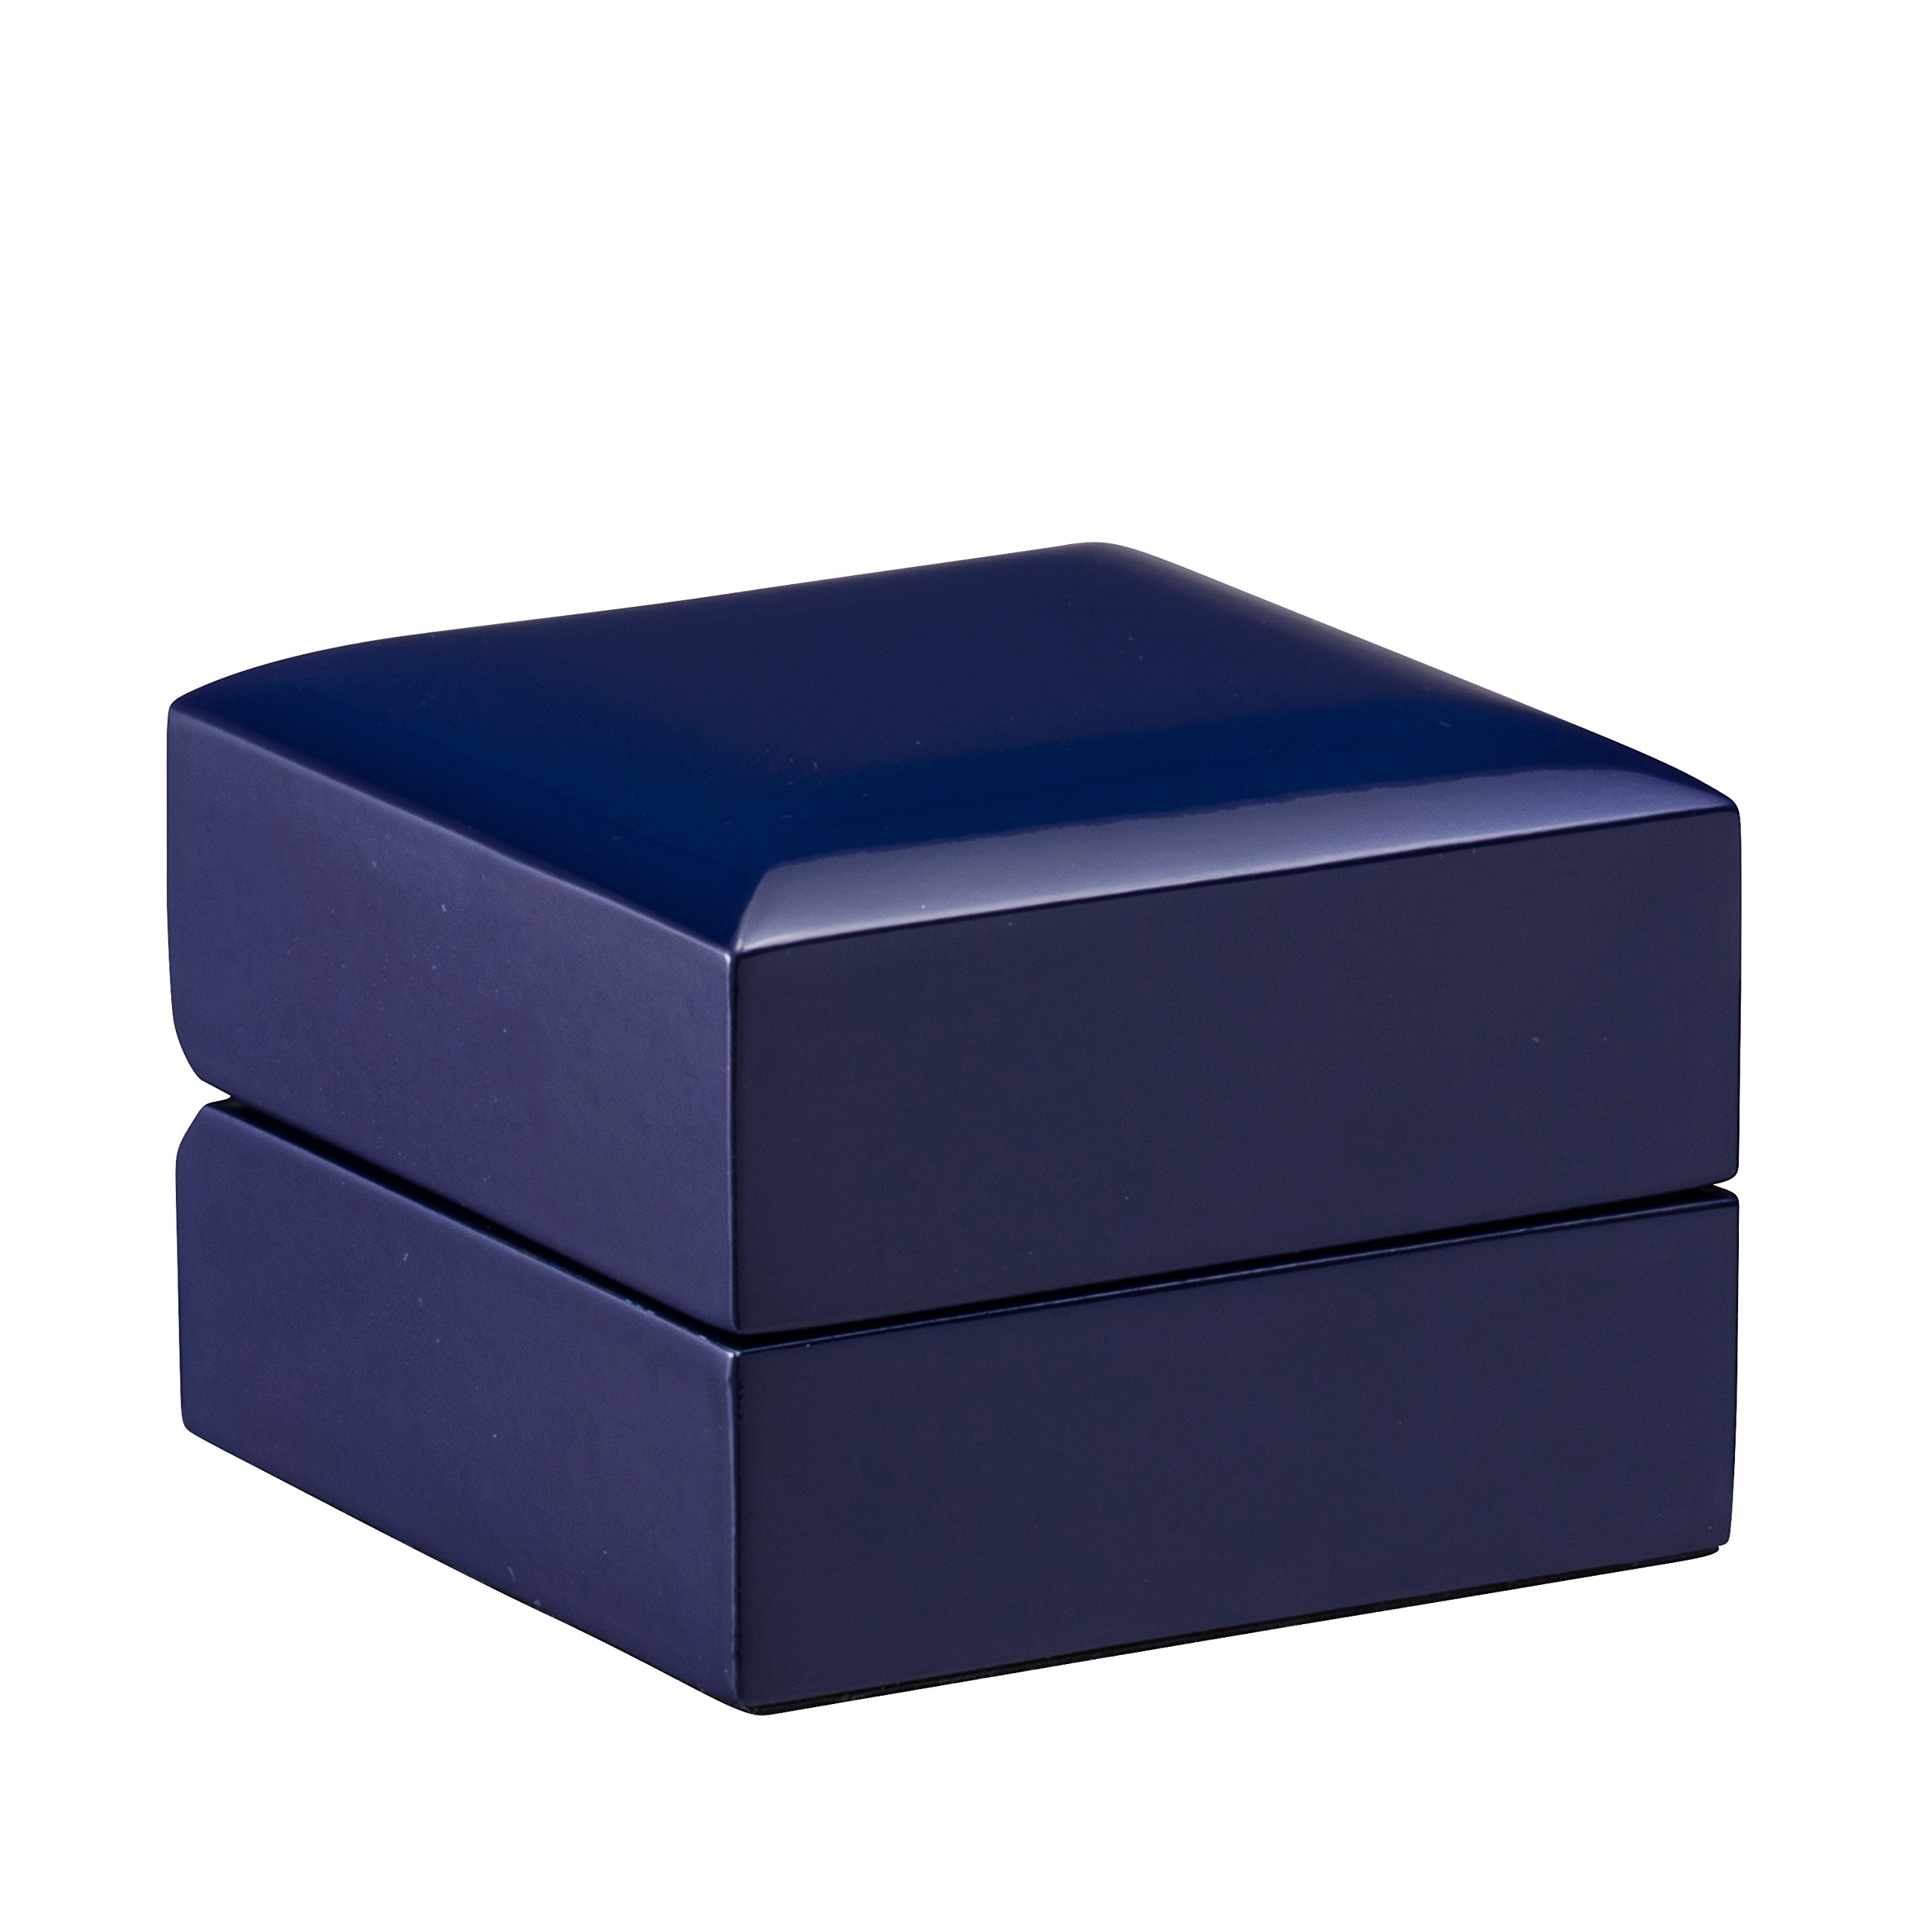 Allure Imperial Ring Box, Blue by Allure Pack (Image #3)